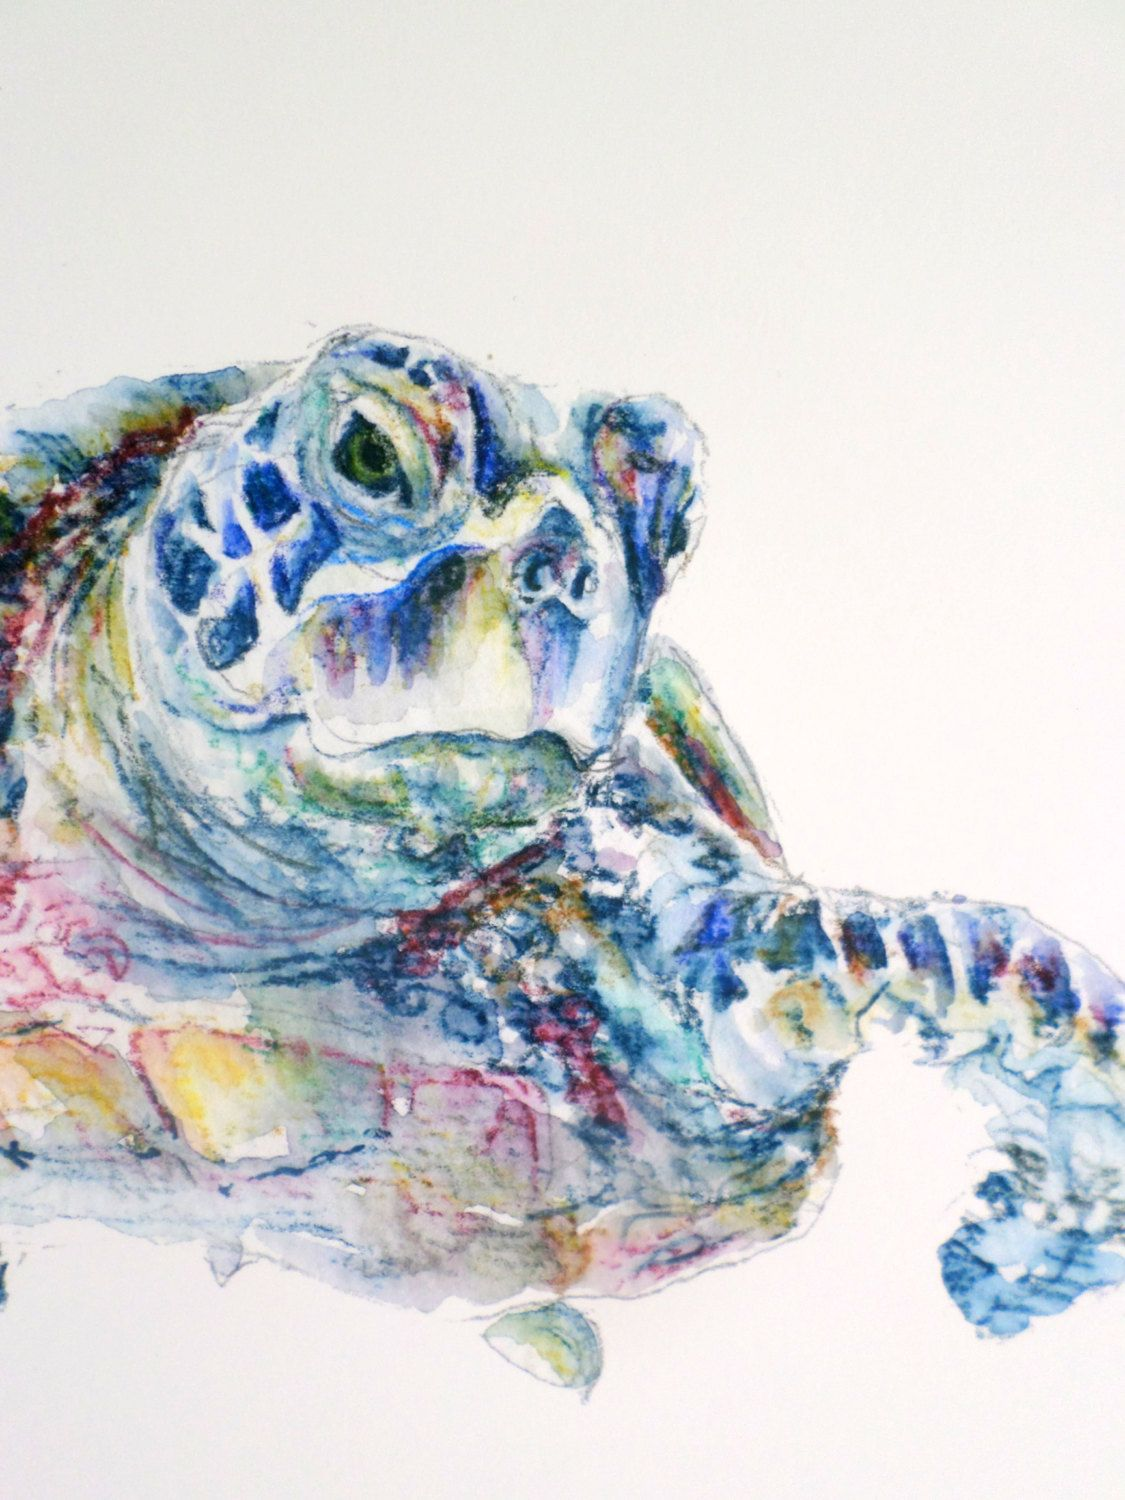 1125x1500 Turtle Illustration, Turtle Drawing, Turtle Painting, Sea Turtle